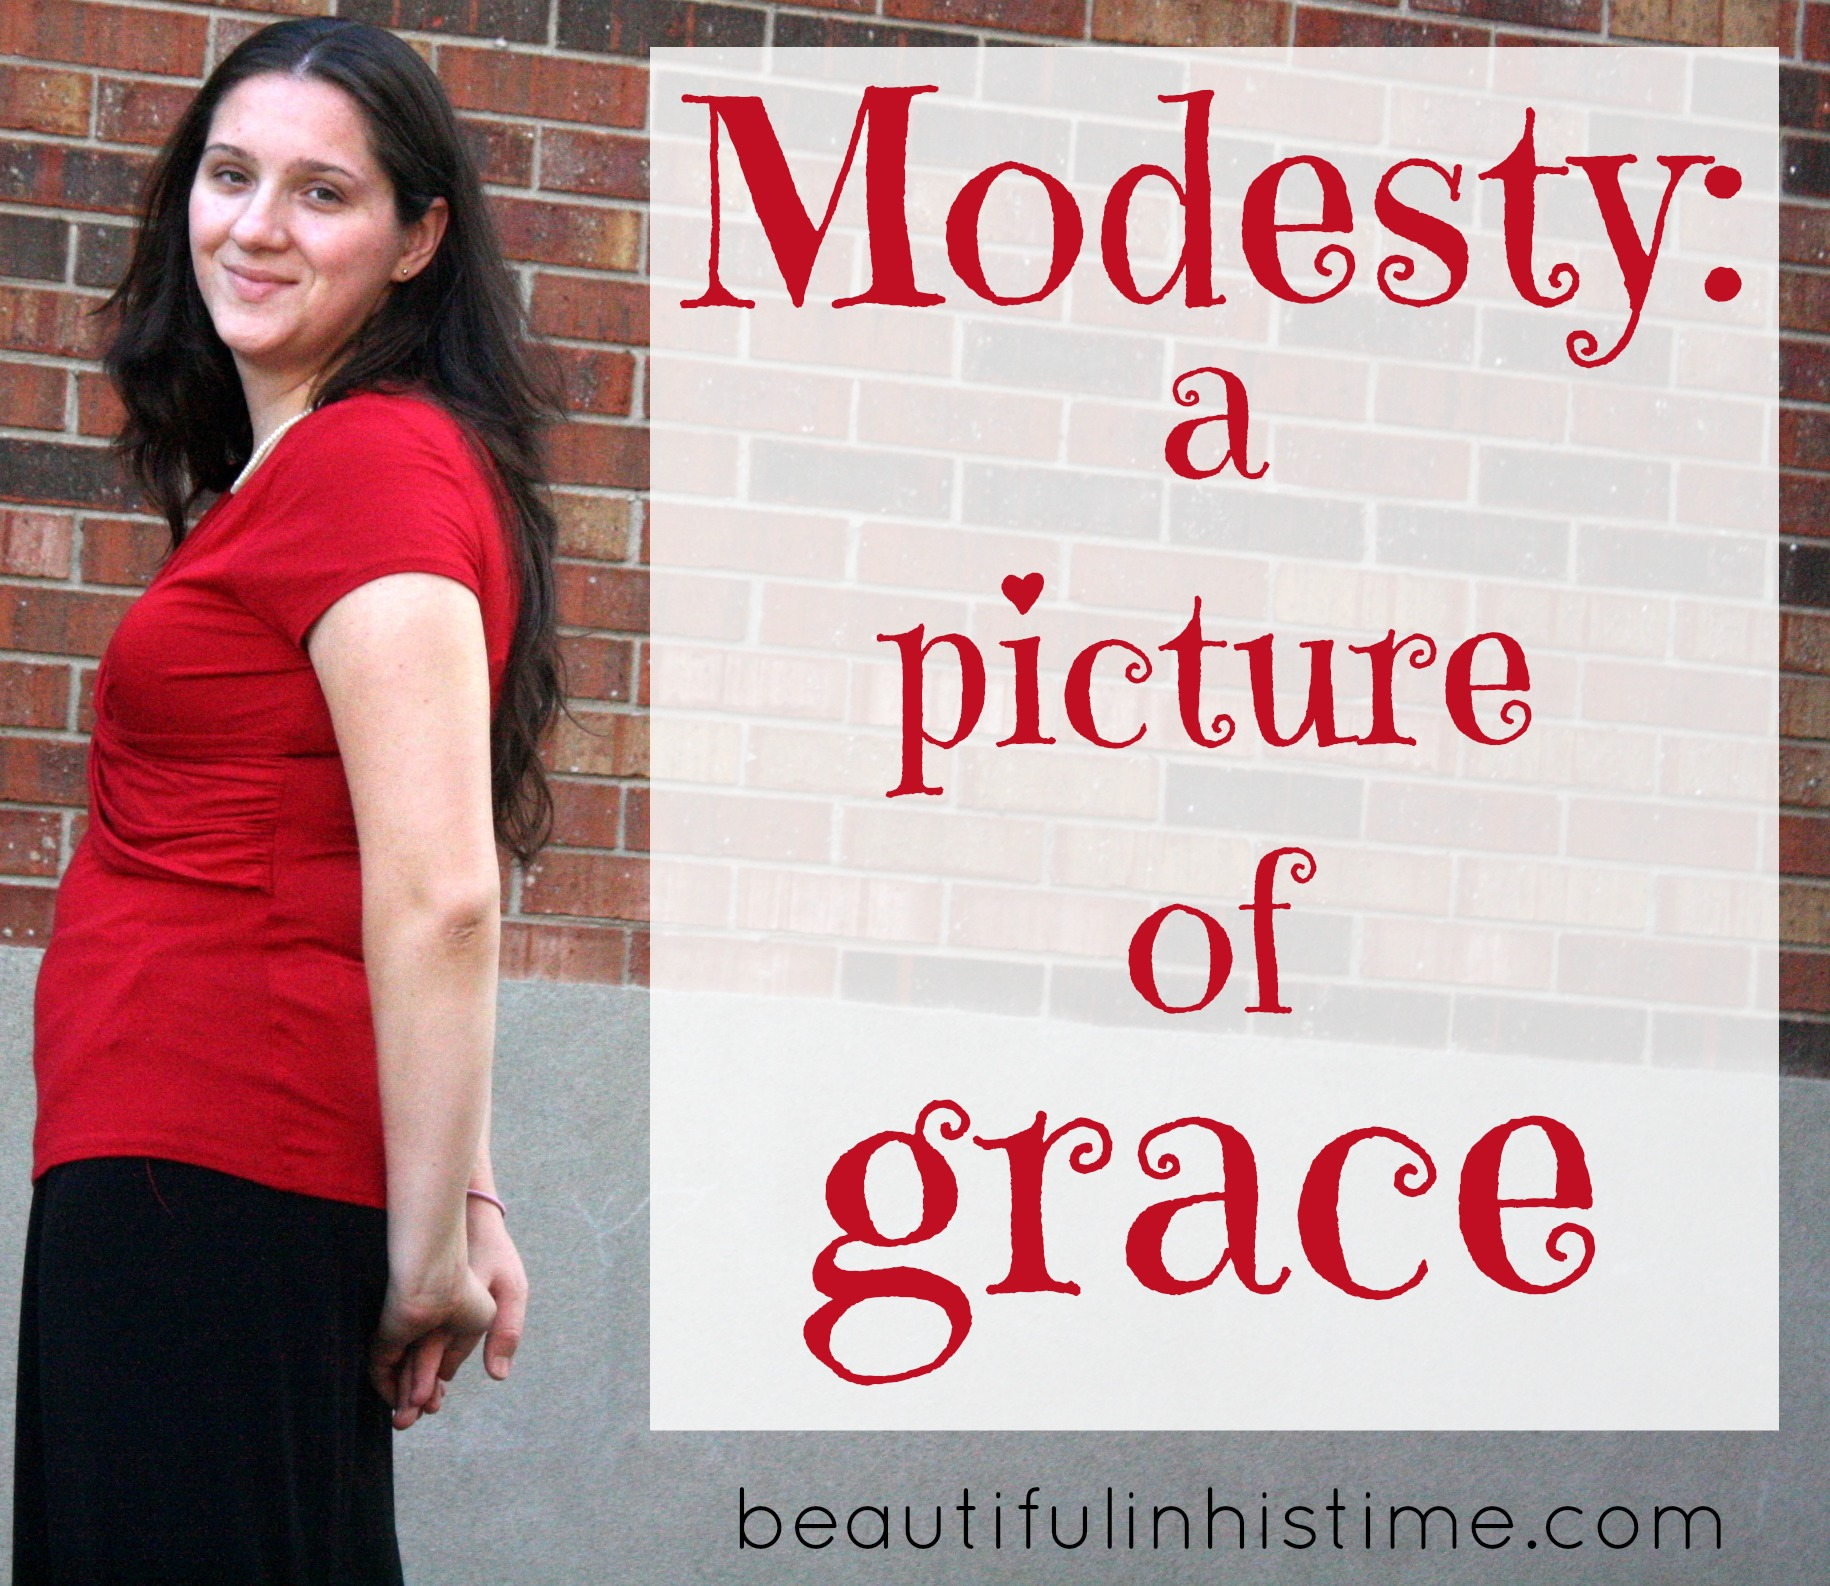 Modesty: a picture of grace. #modesty {the wilderness between #legalism and #grace part 11 @beautifulinhistime.com}